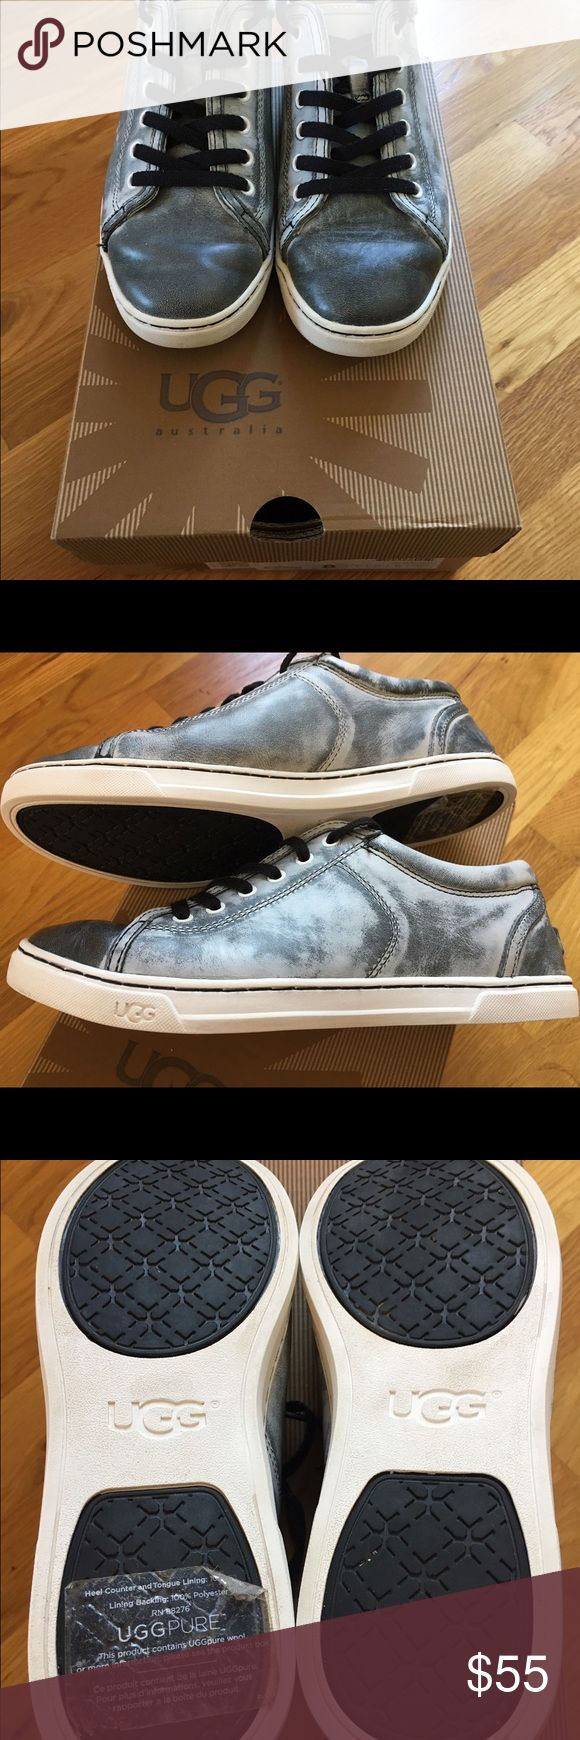 Excellent Used Condition Size 8 UGG sneakers Gently Owned UGG Tomi Leather Black Distressed Sneakers size 8.  UGG PURE contains pure wool inside. Heel Counter and Tongue Lining 100% Pure Wool. Lining Backing 100% Polyester RN 88276 Super Comfortable UGG Shoes Sneakers